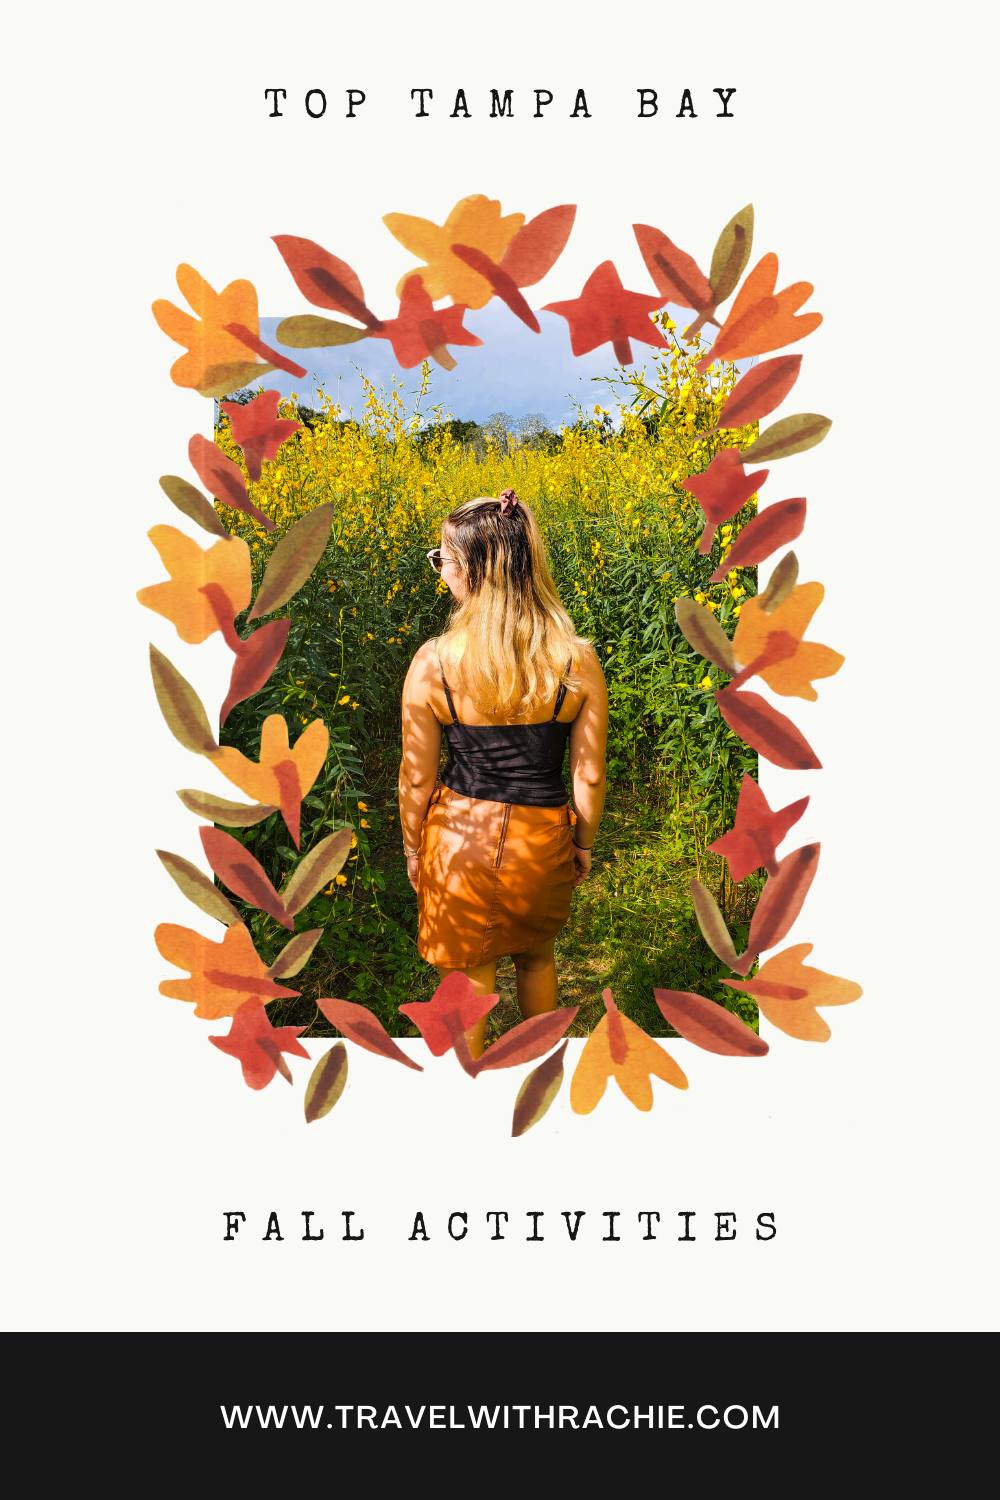 Fall Activities in the Tampa Bay Pinterest Pin